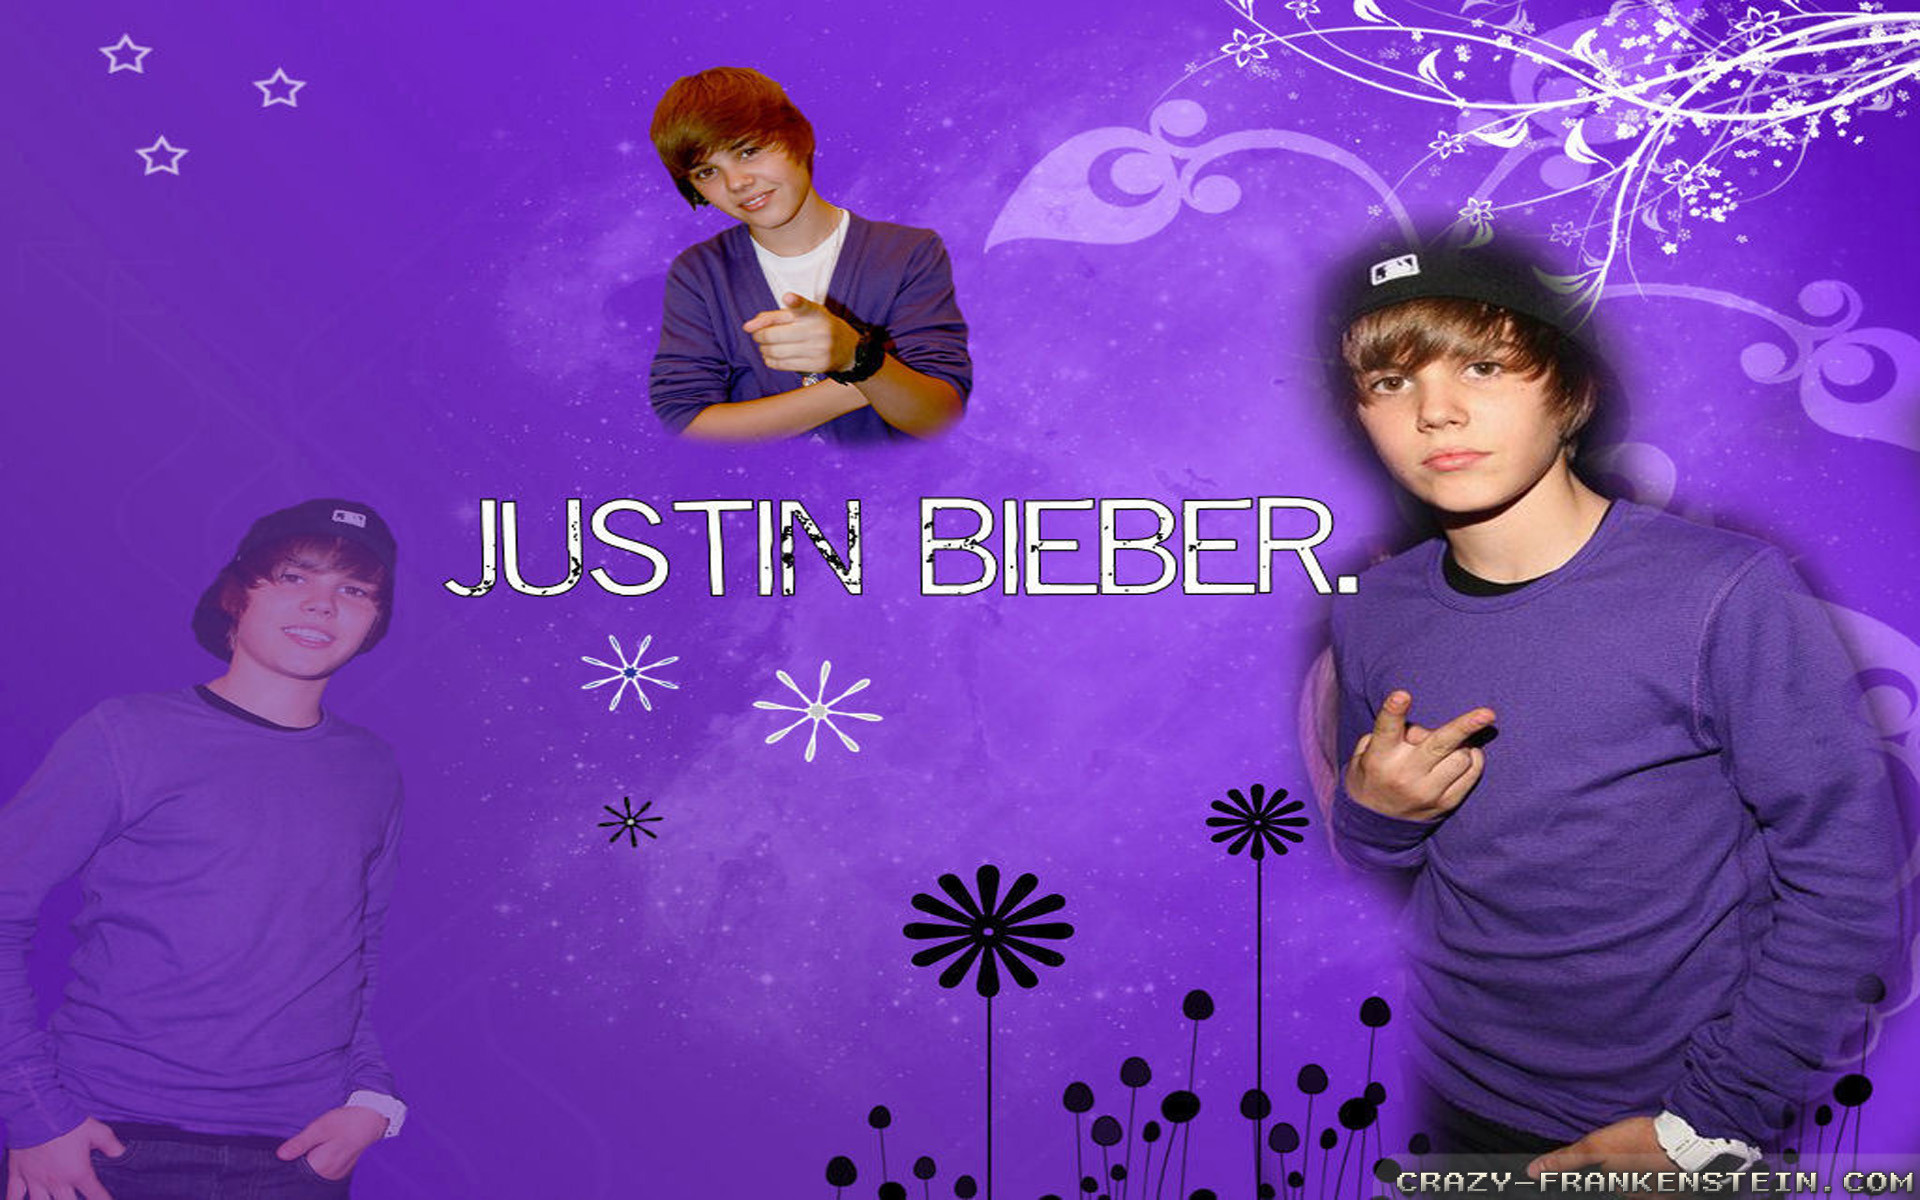 1920x1200 Wallpaper: Justin Bieber purple wallpapers. Resolution: 1024x768 |  1280x1024 | 1600x1200. Widescreen Res: 1440x900 | 1680x1050 |